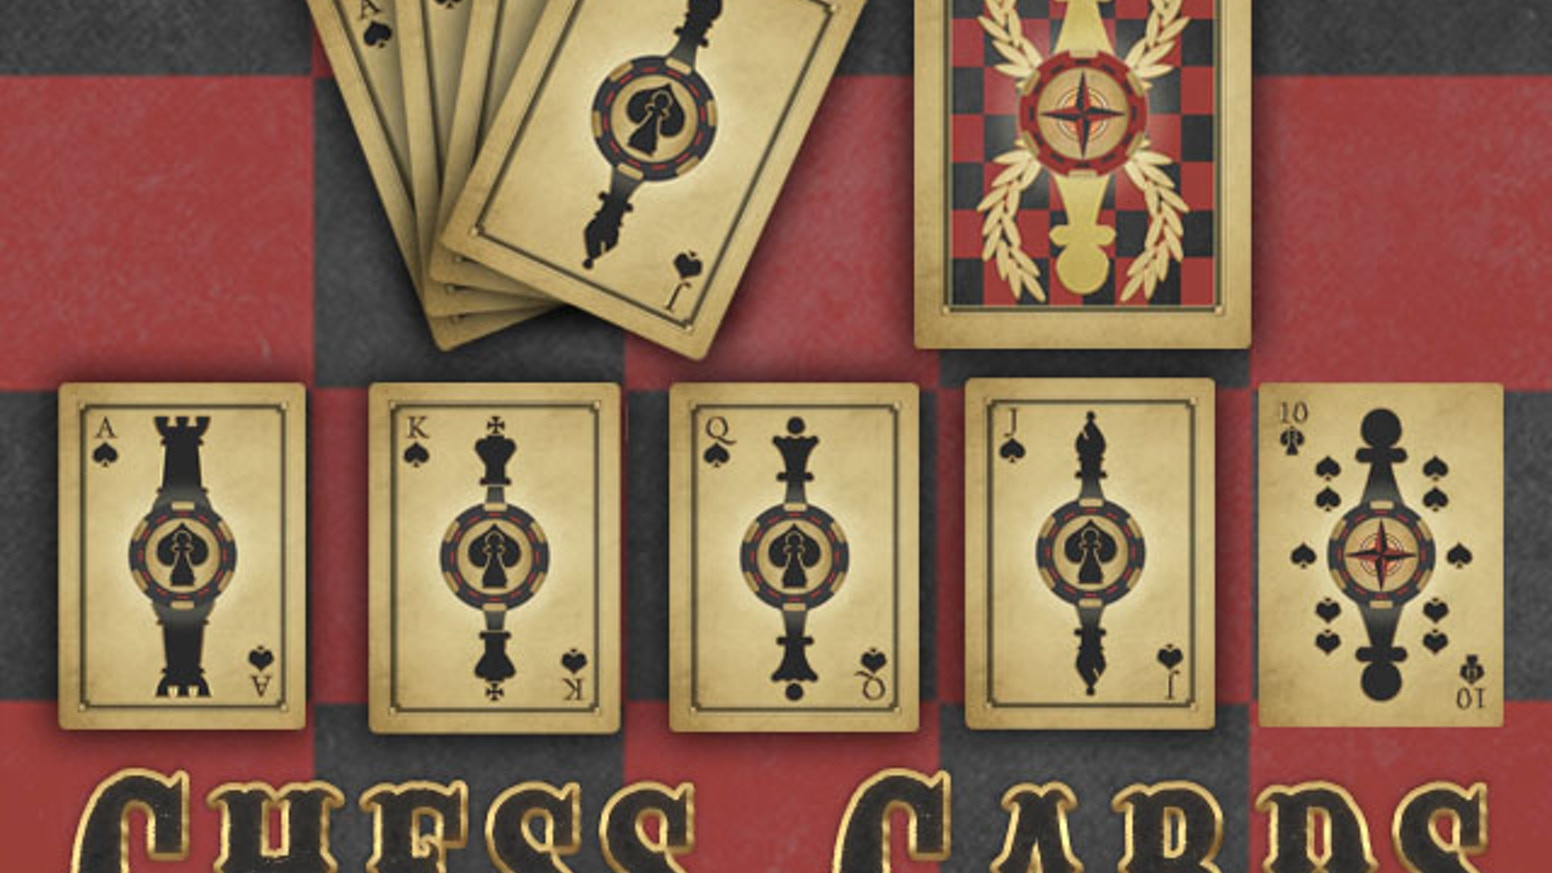 Chess Cards is a unique deck of playing cards that can be used to play your favorite card game or a challenging game of chess.